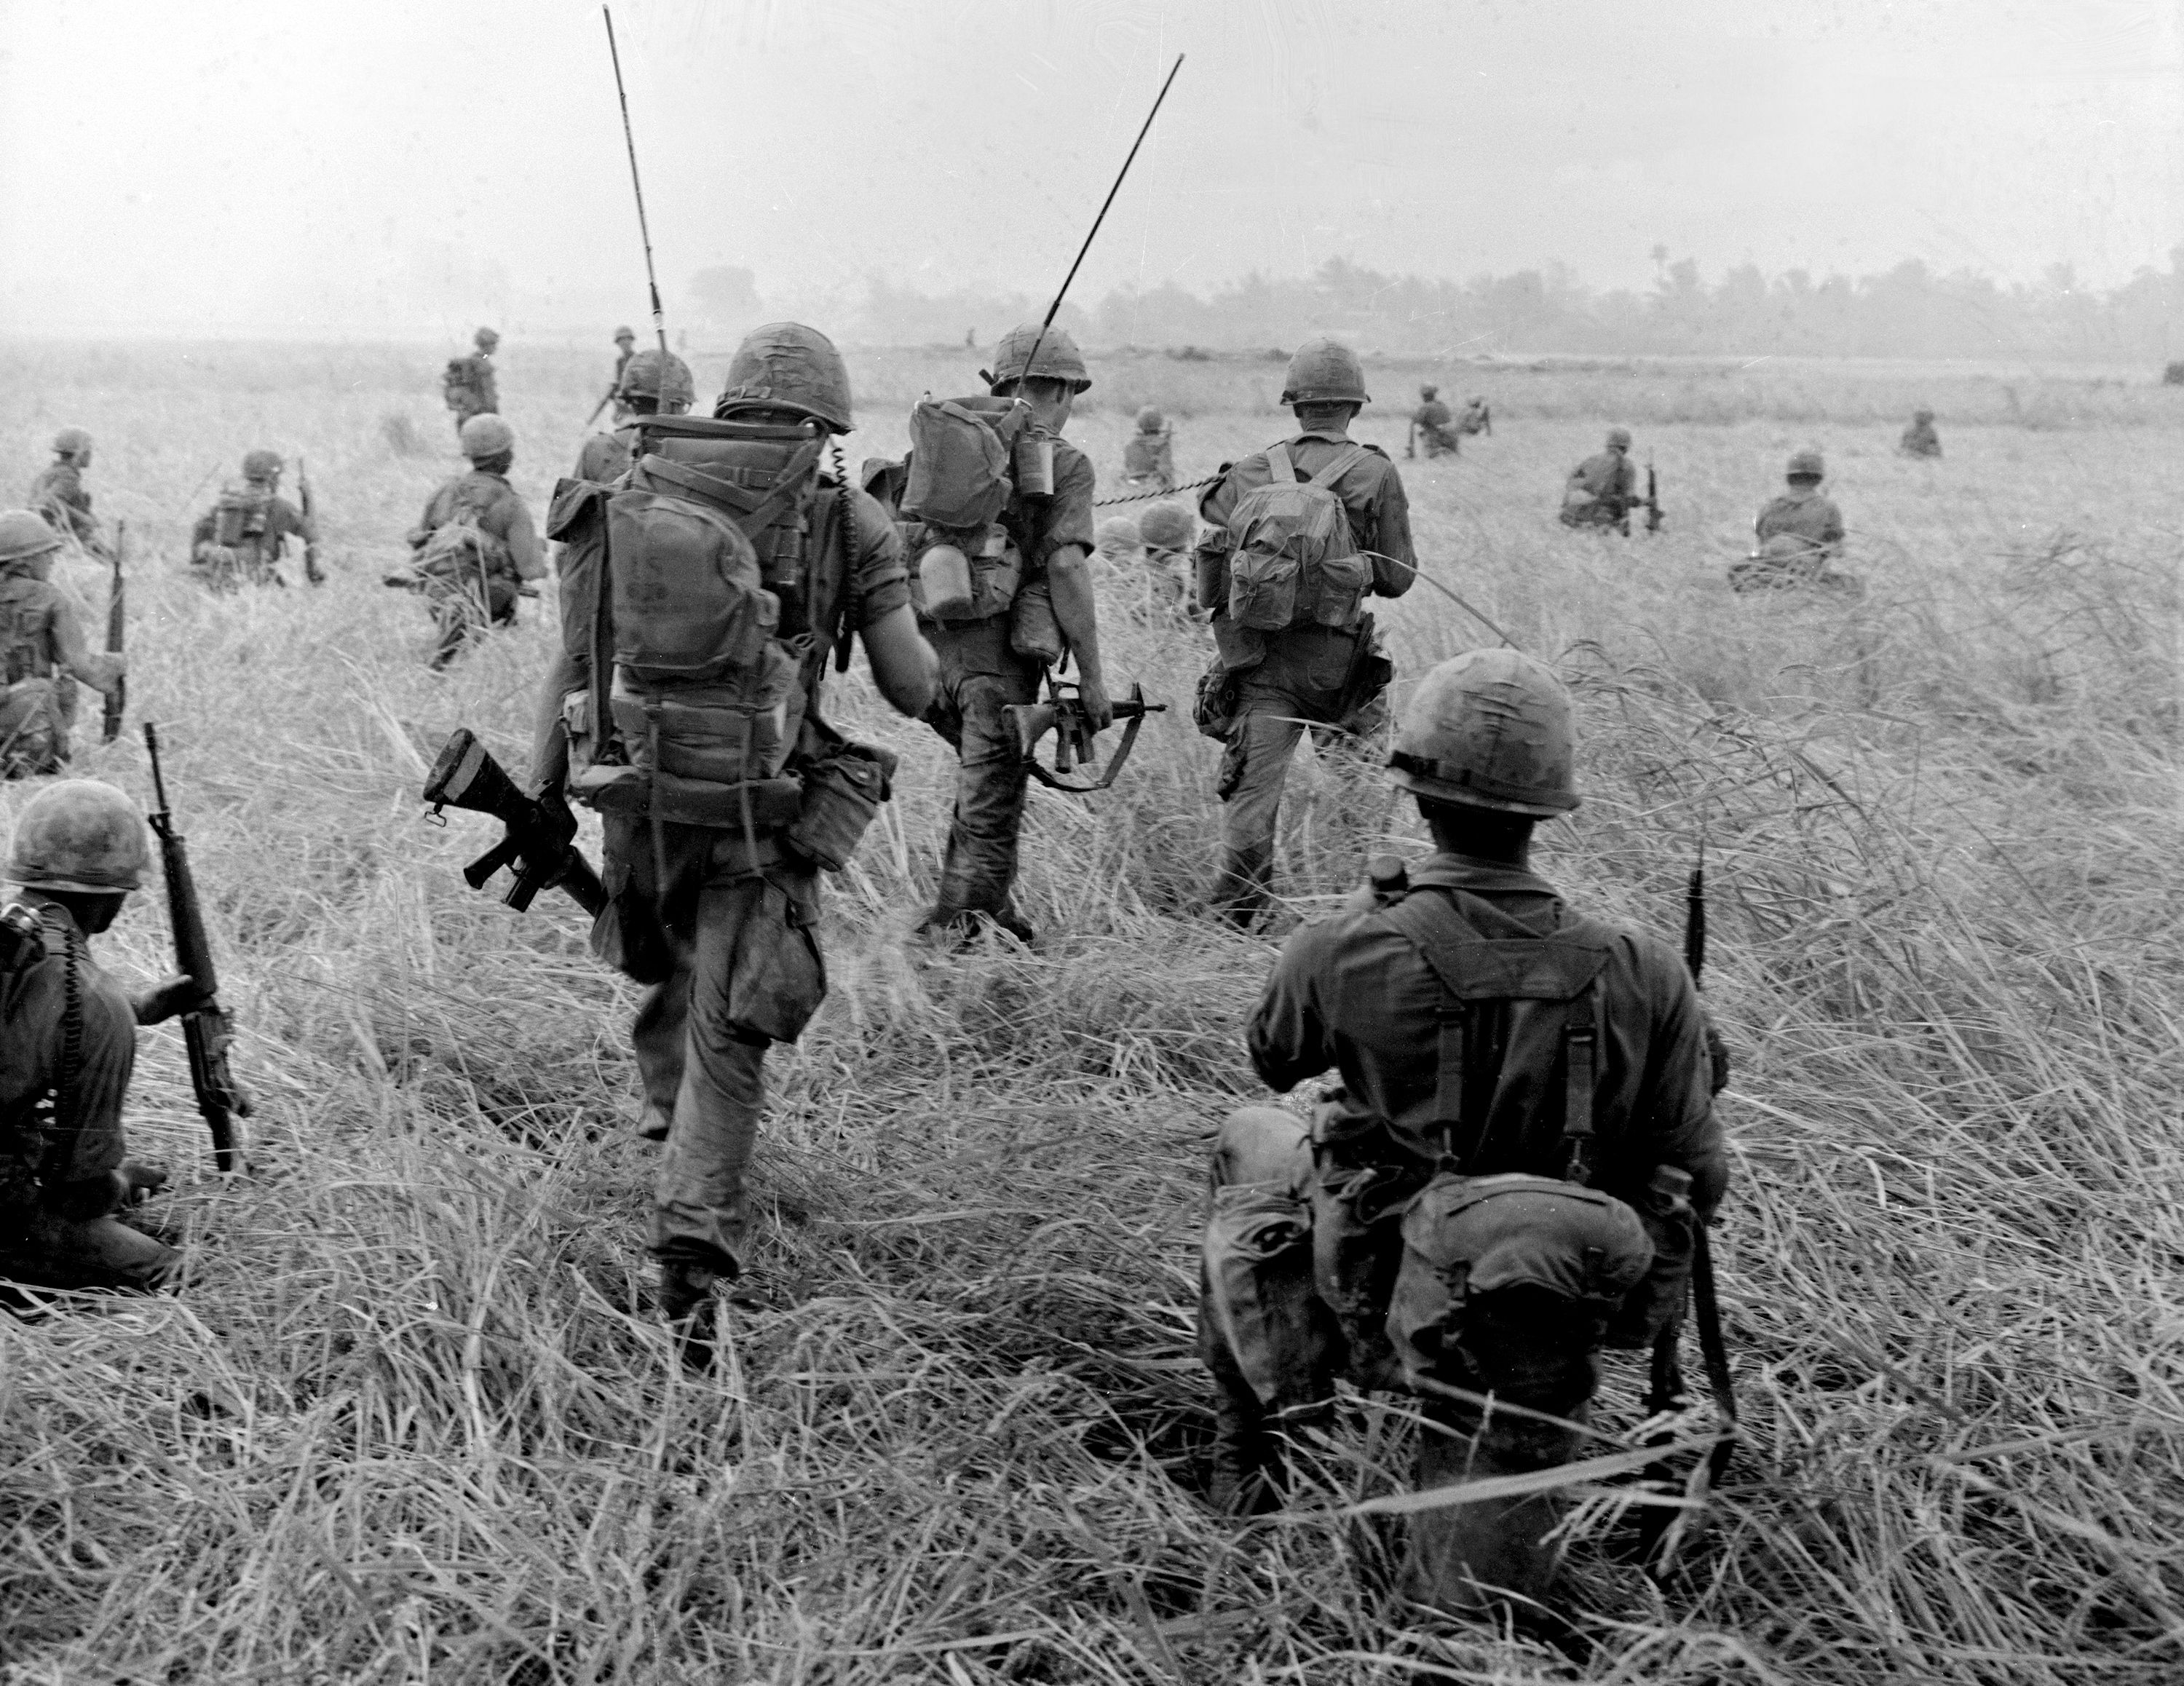 U.S. Army infantry searching for Việt Cộng, 23 January 1966